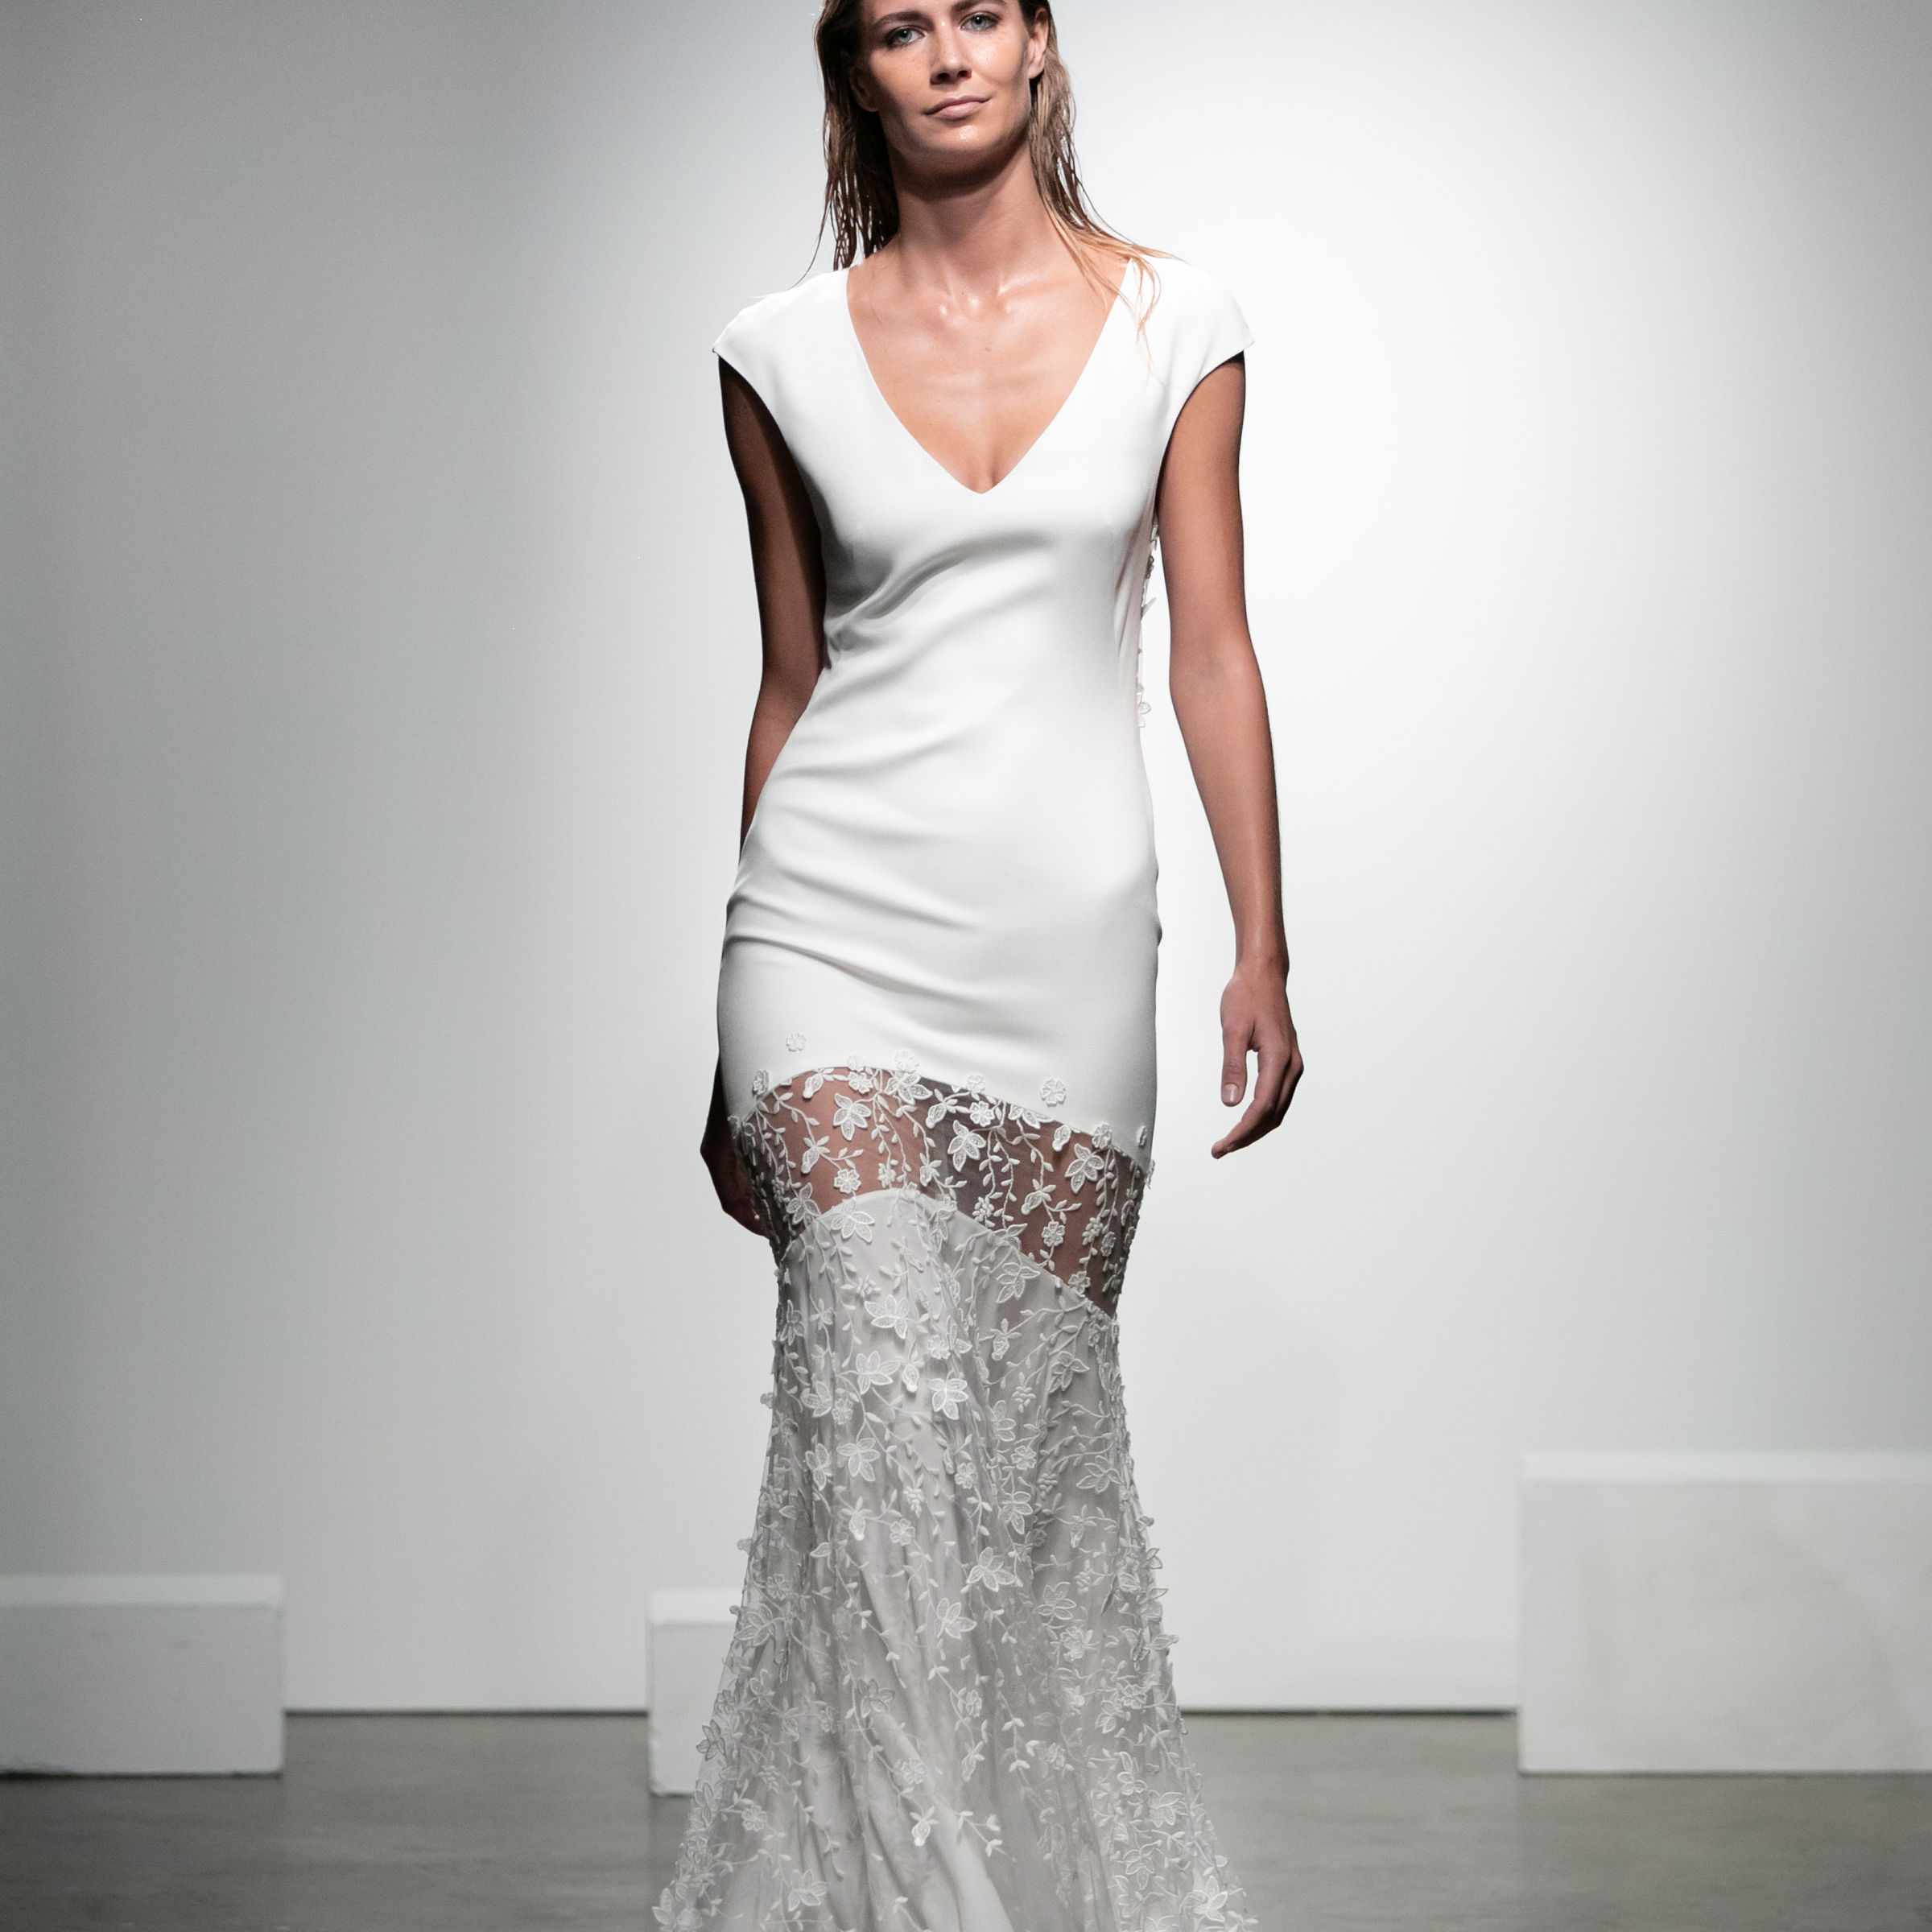 Model in V-neck crepe dress with cap sleeves and a 3D floral-embroidered tulle skirt